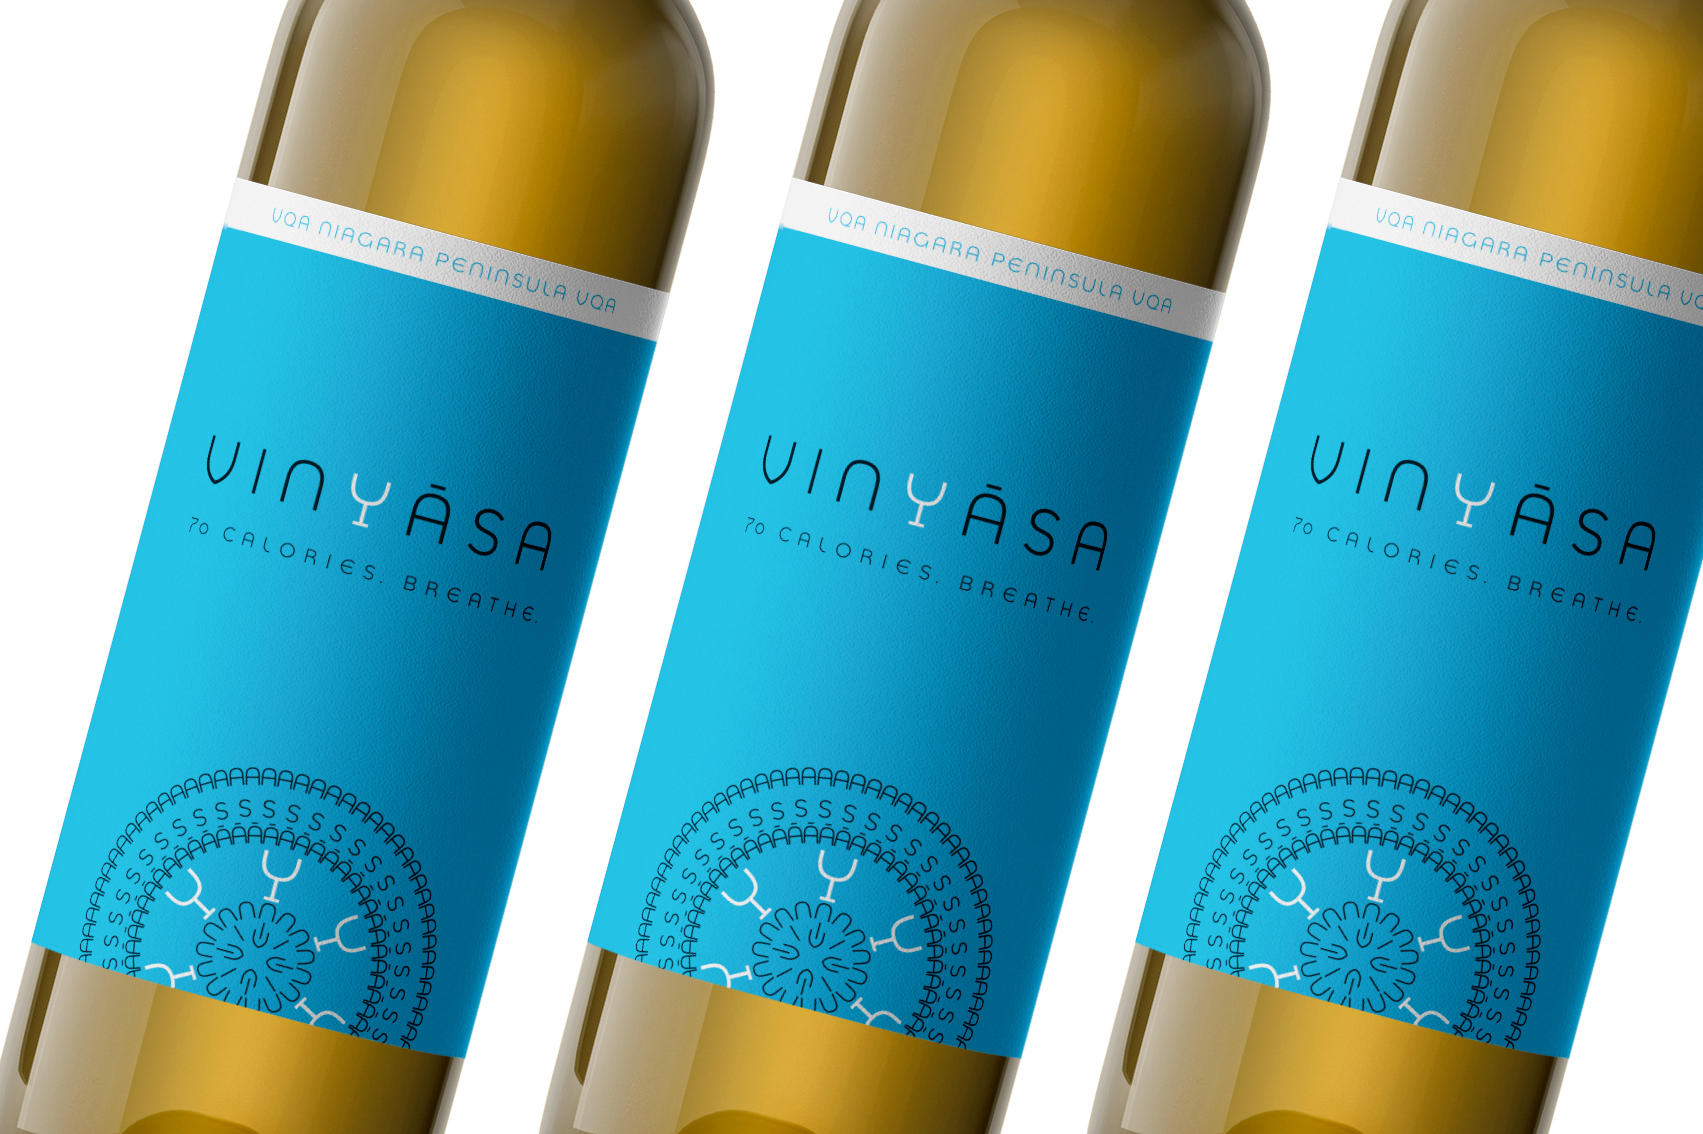 Mike Weir Wines - Vinyasa